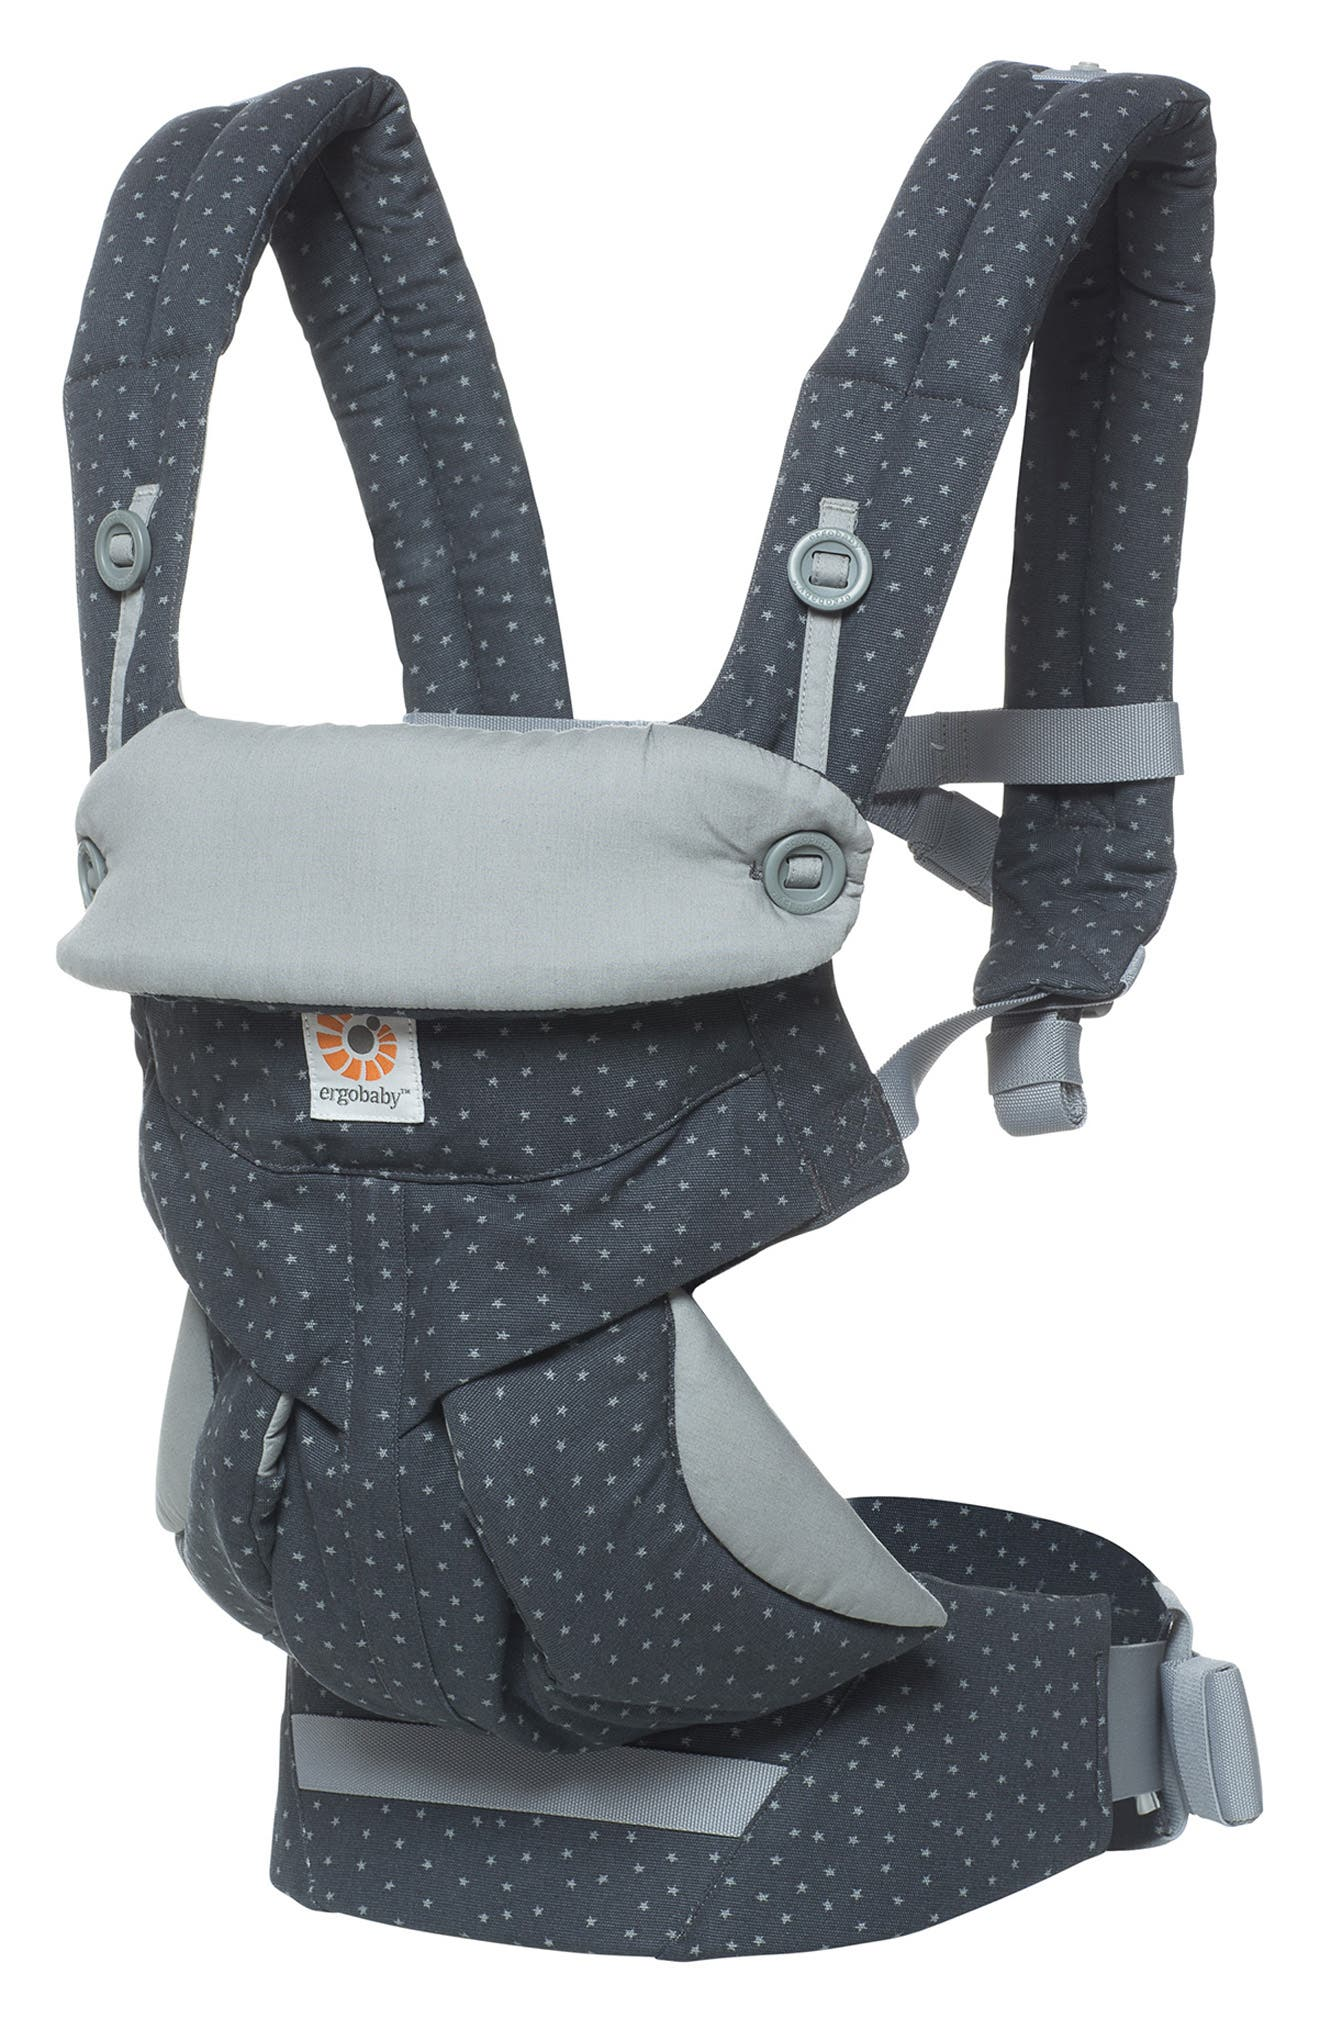 '360' Baby Carrier,                         Main,                         color, GREY WITH STARS